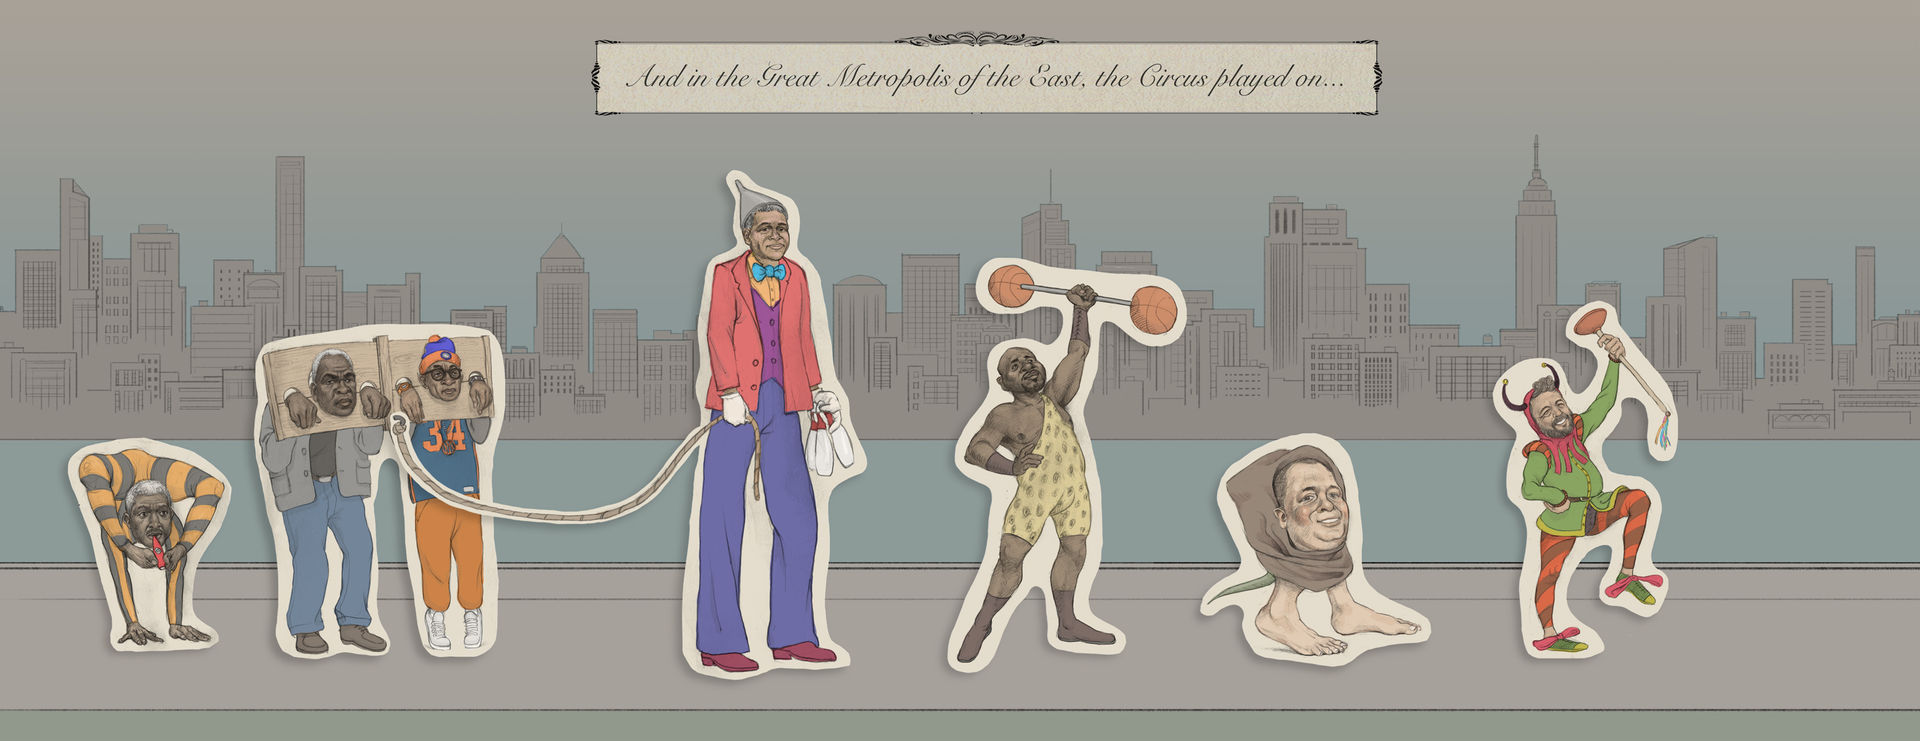 And in the Great Metropolis of the East the Circus played on...